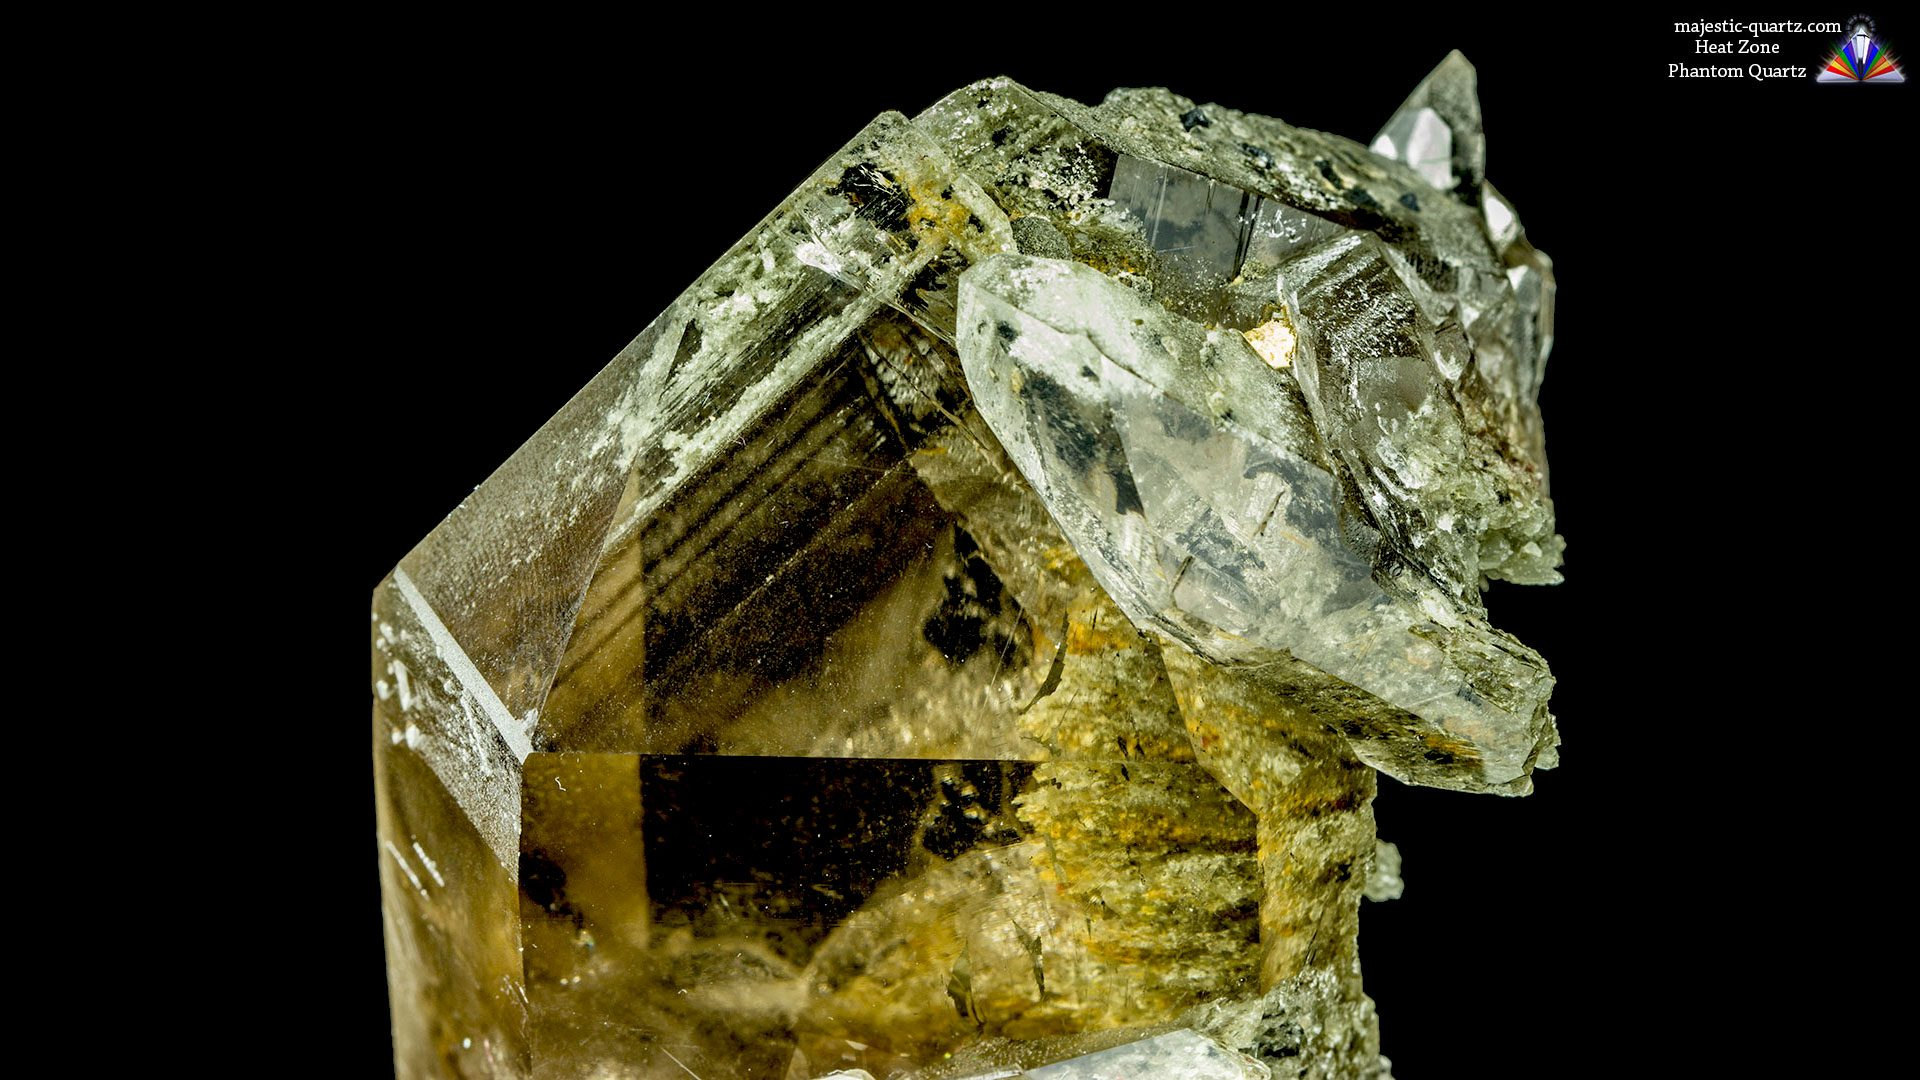 Phantom Quartz Properties and Meaning - Photograph by Anthony Bradford